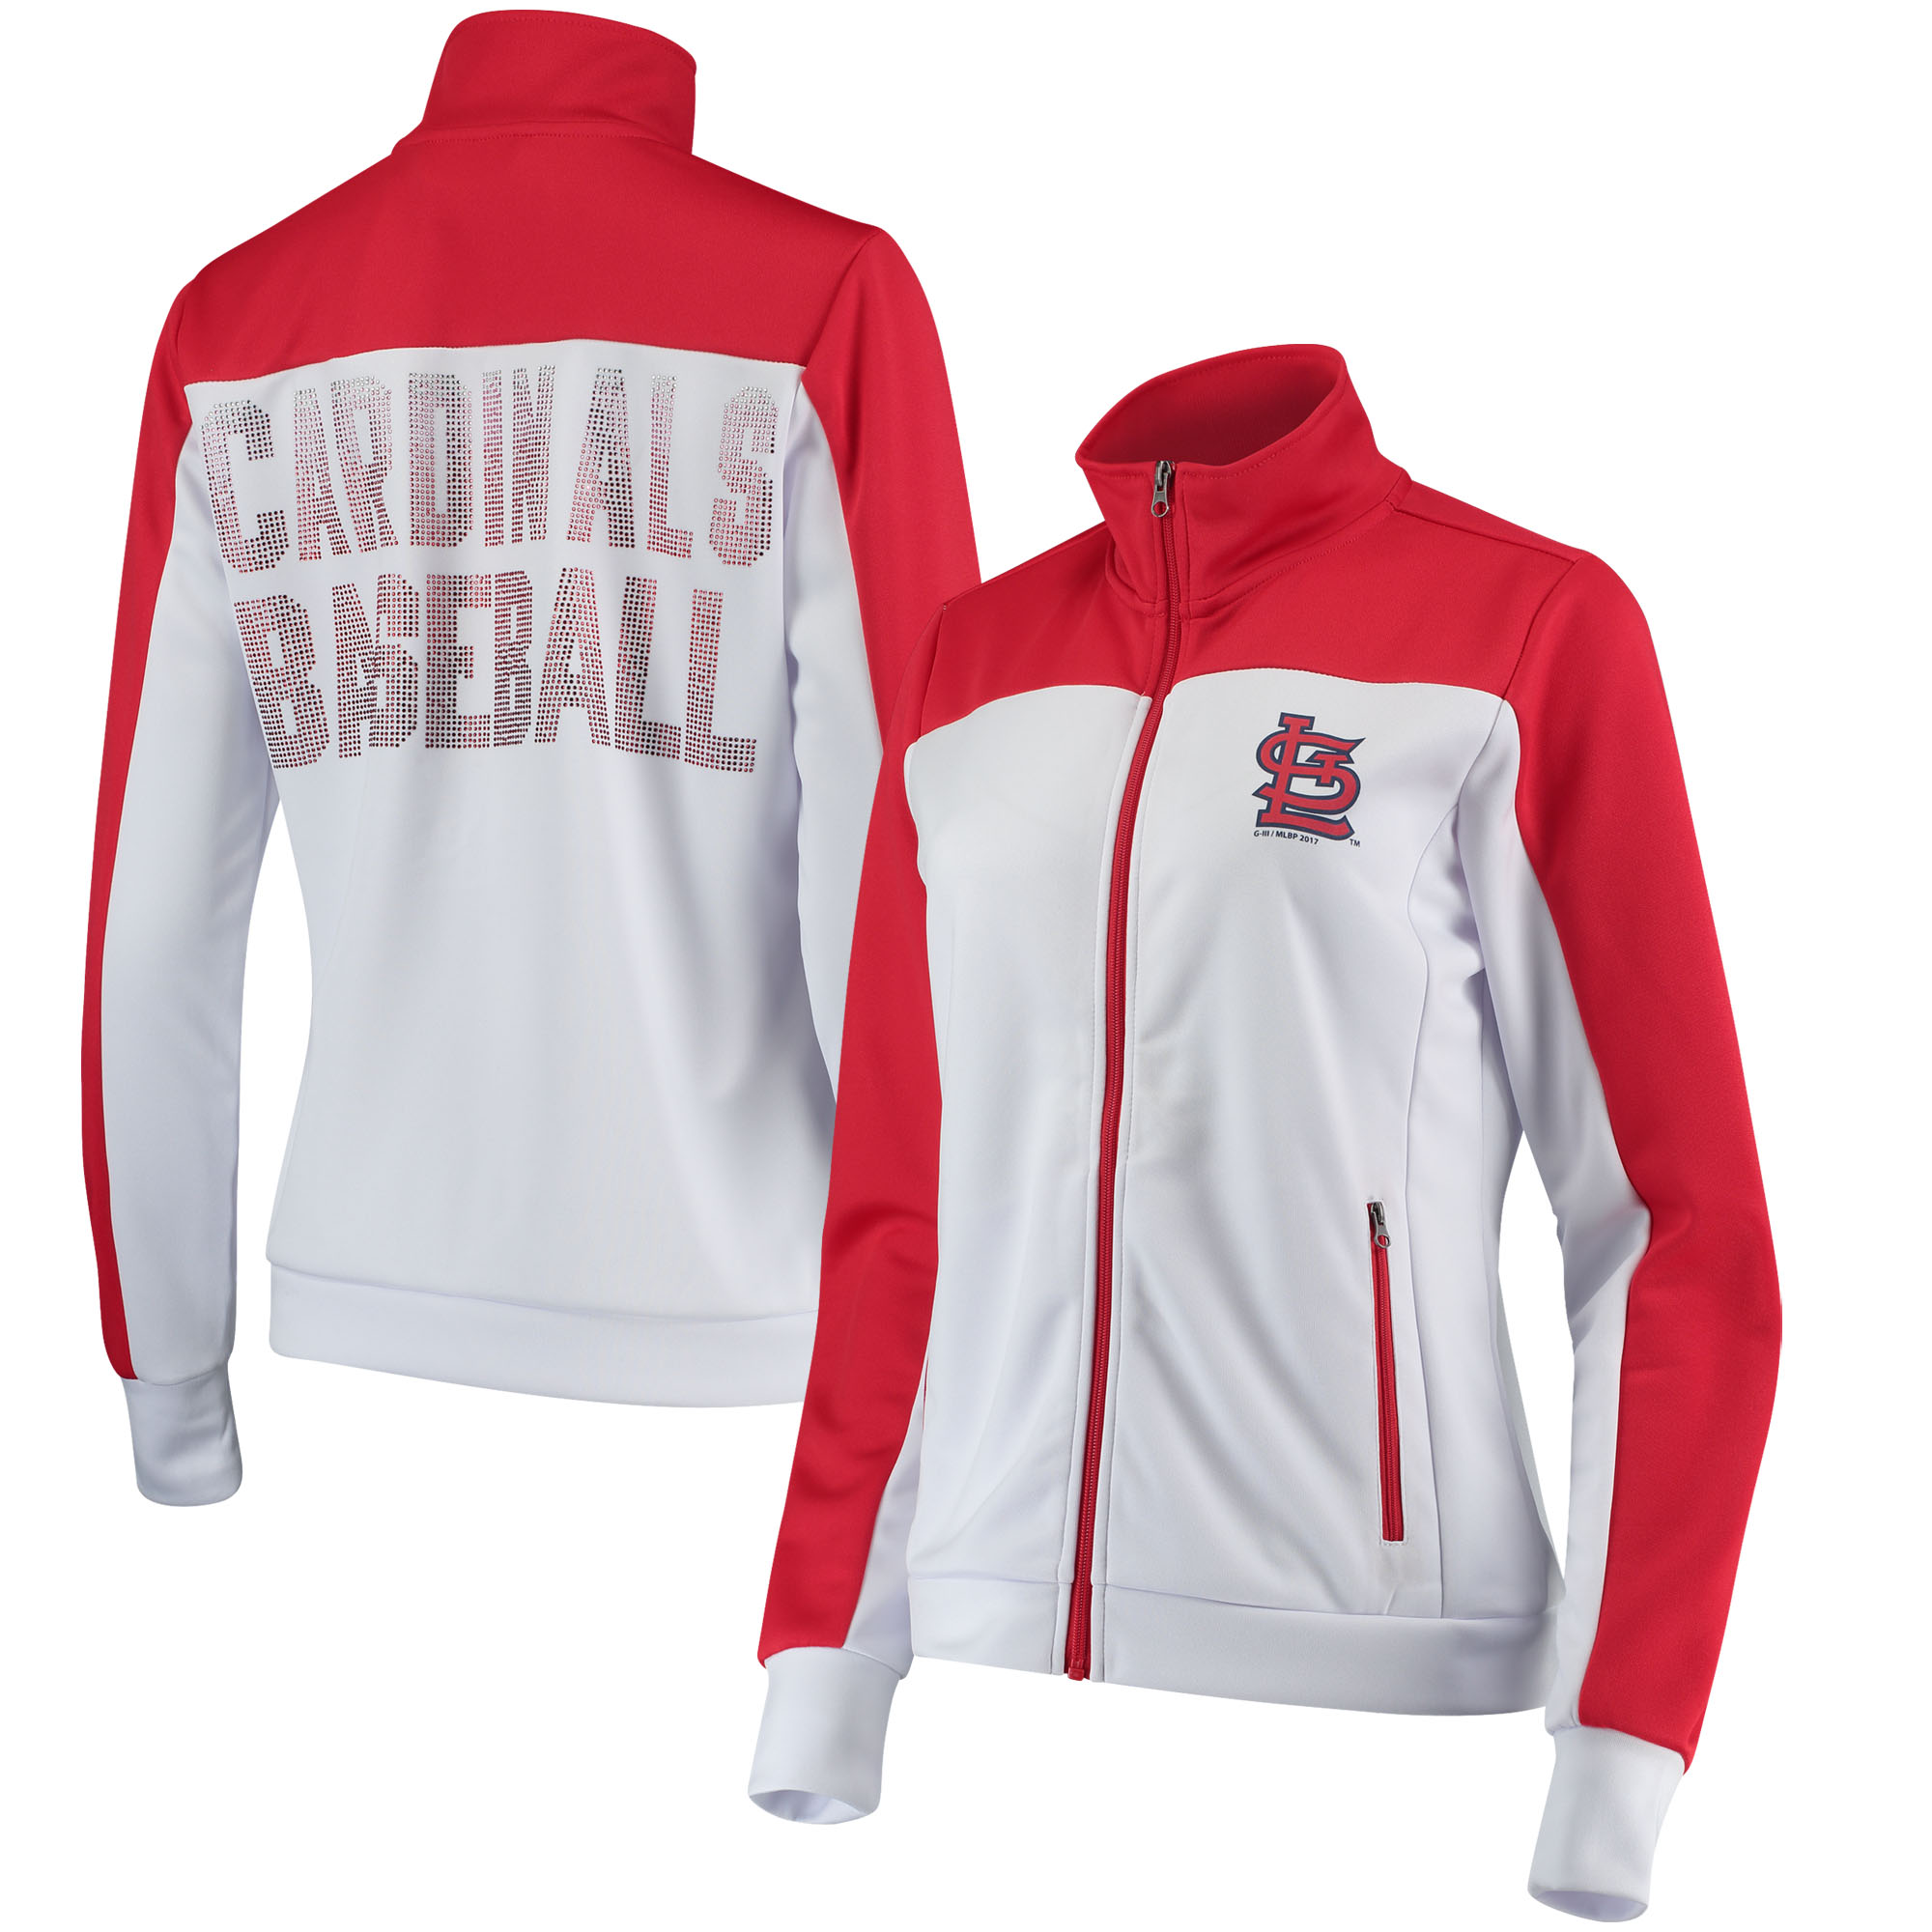 St. Louis Cardinals G-III 4Her by Carl Banks Women's Play Maker Track Jacket - White/Red